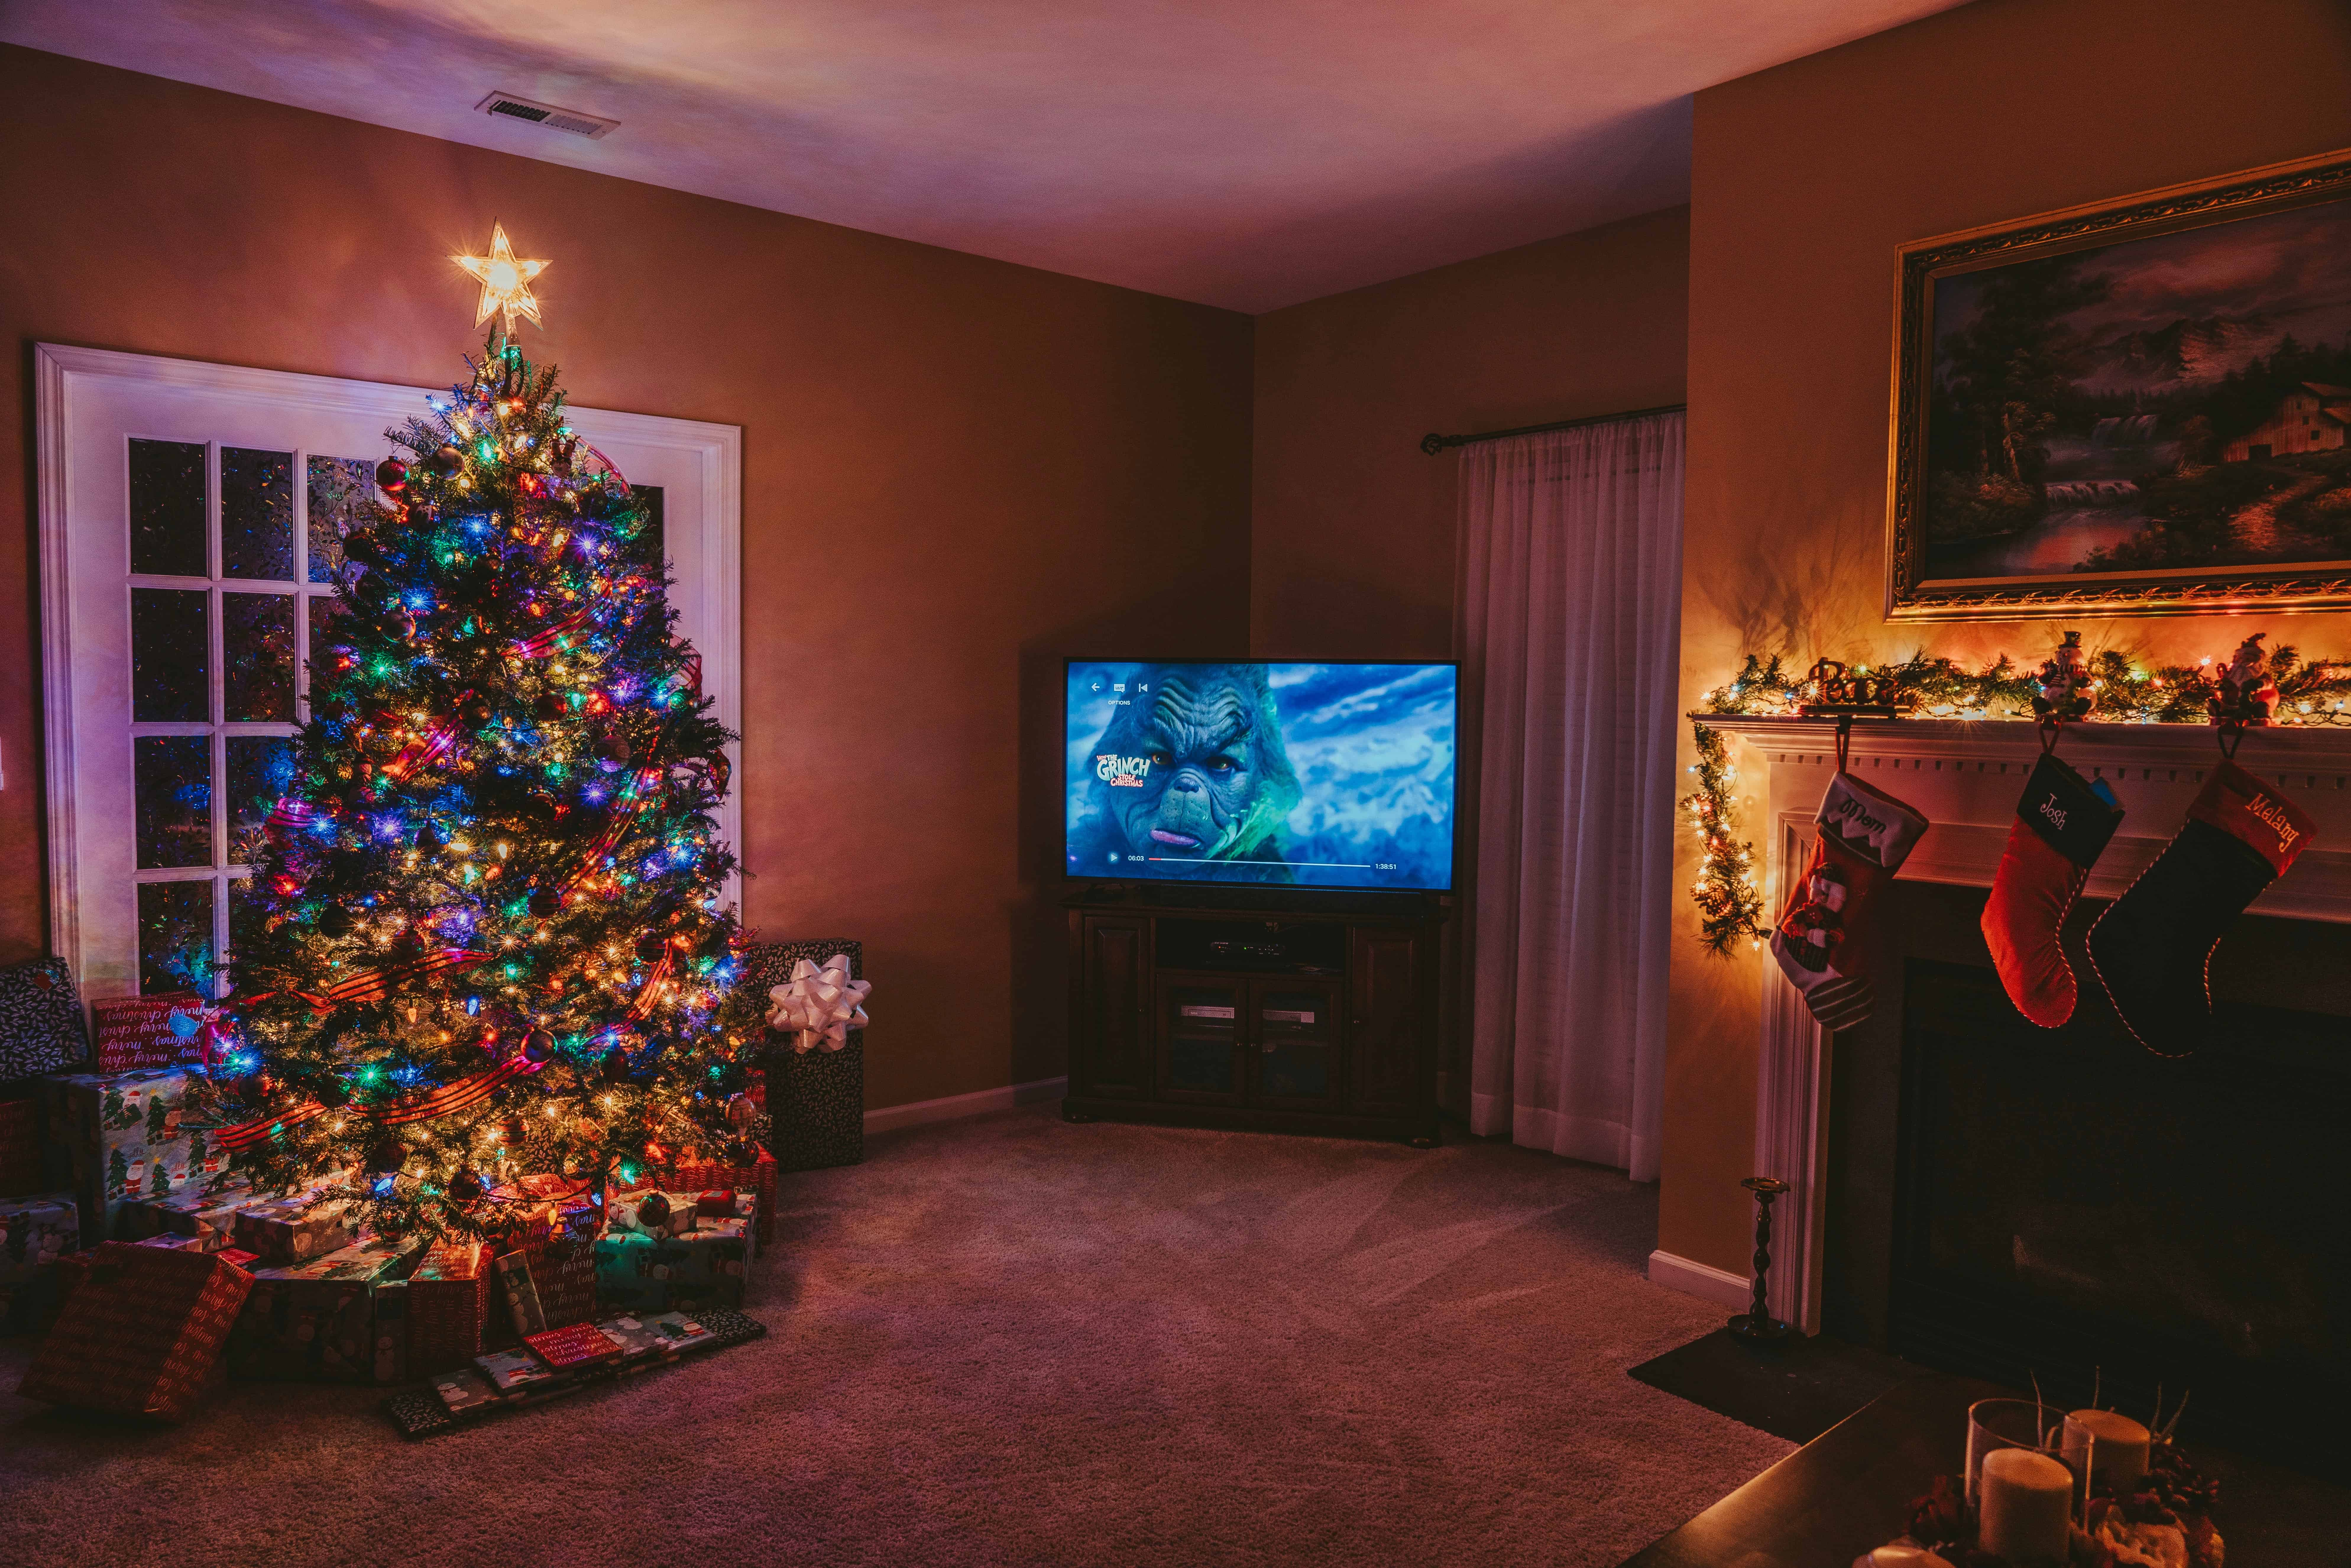 Christmas movies in living room